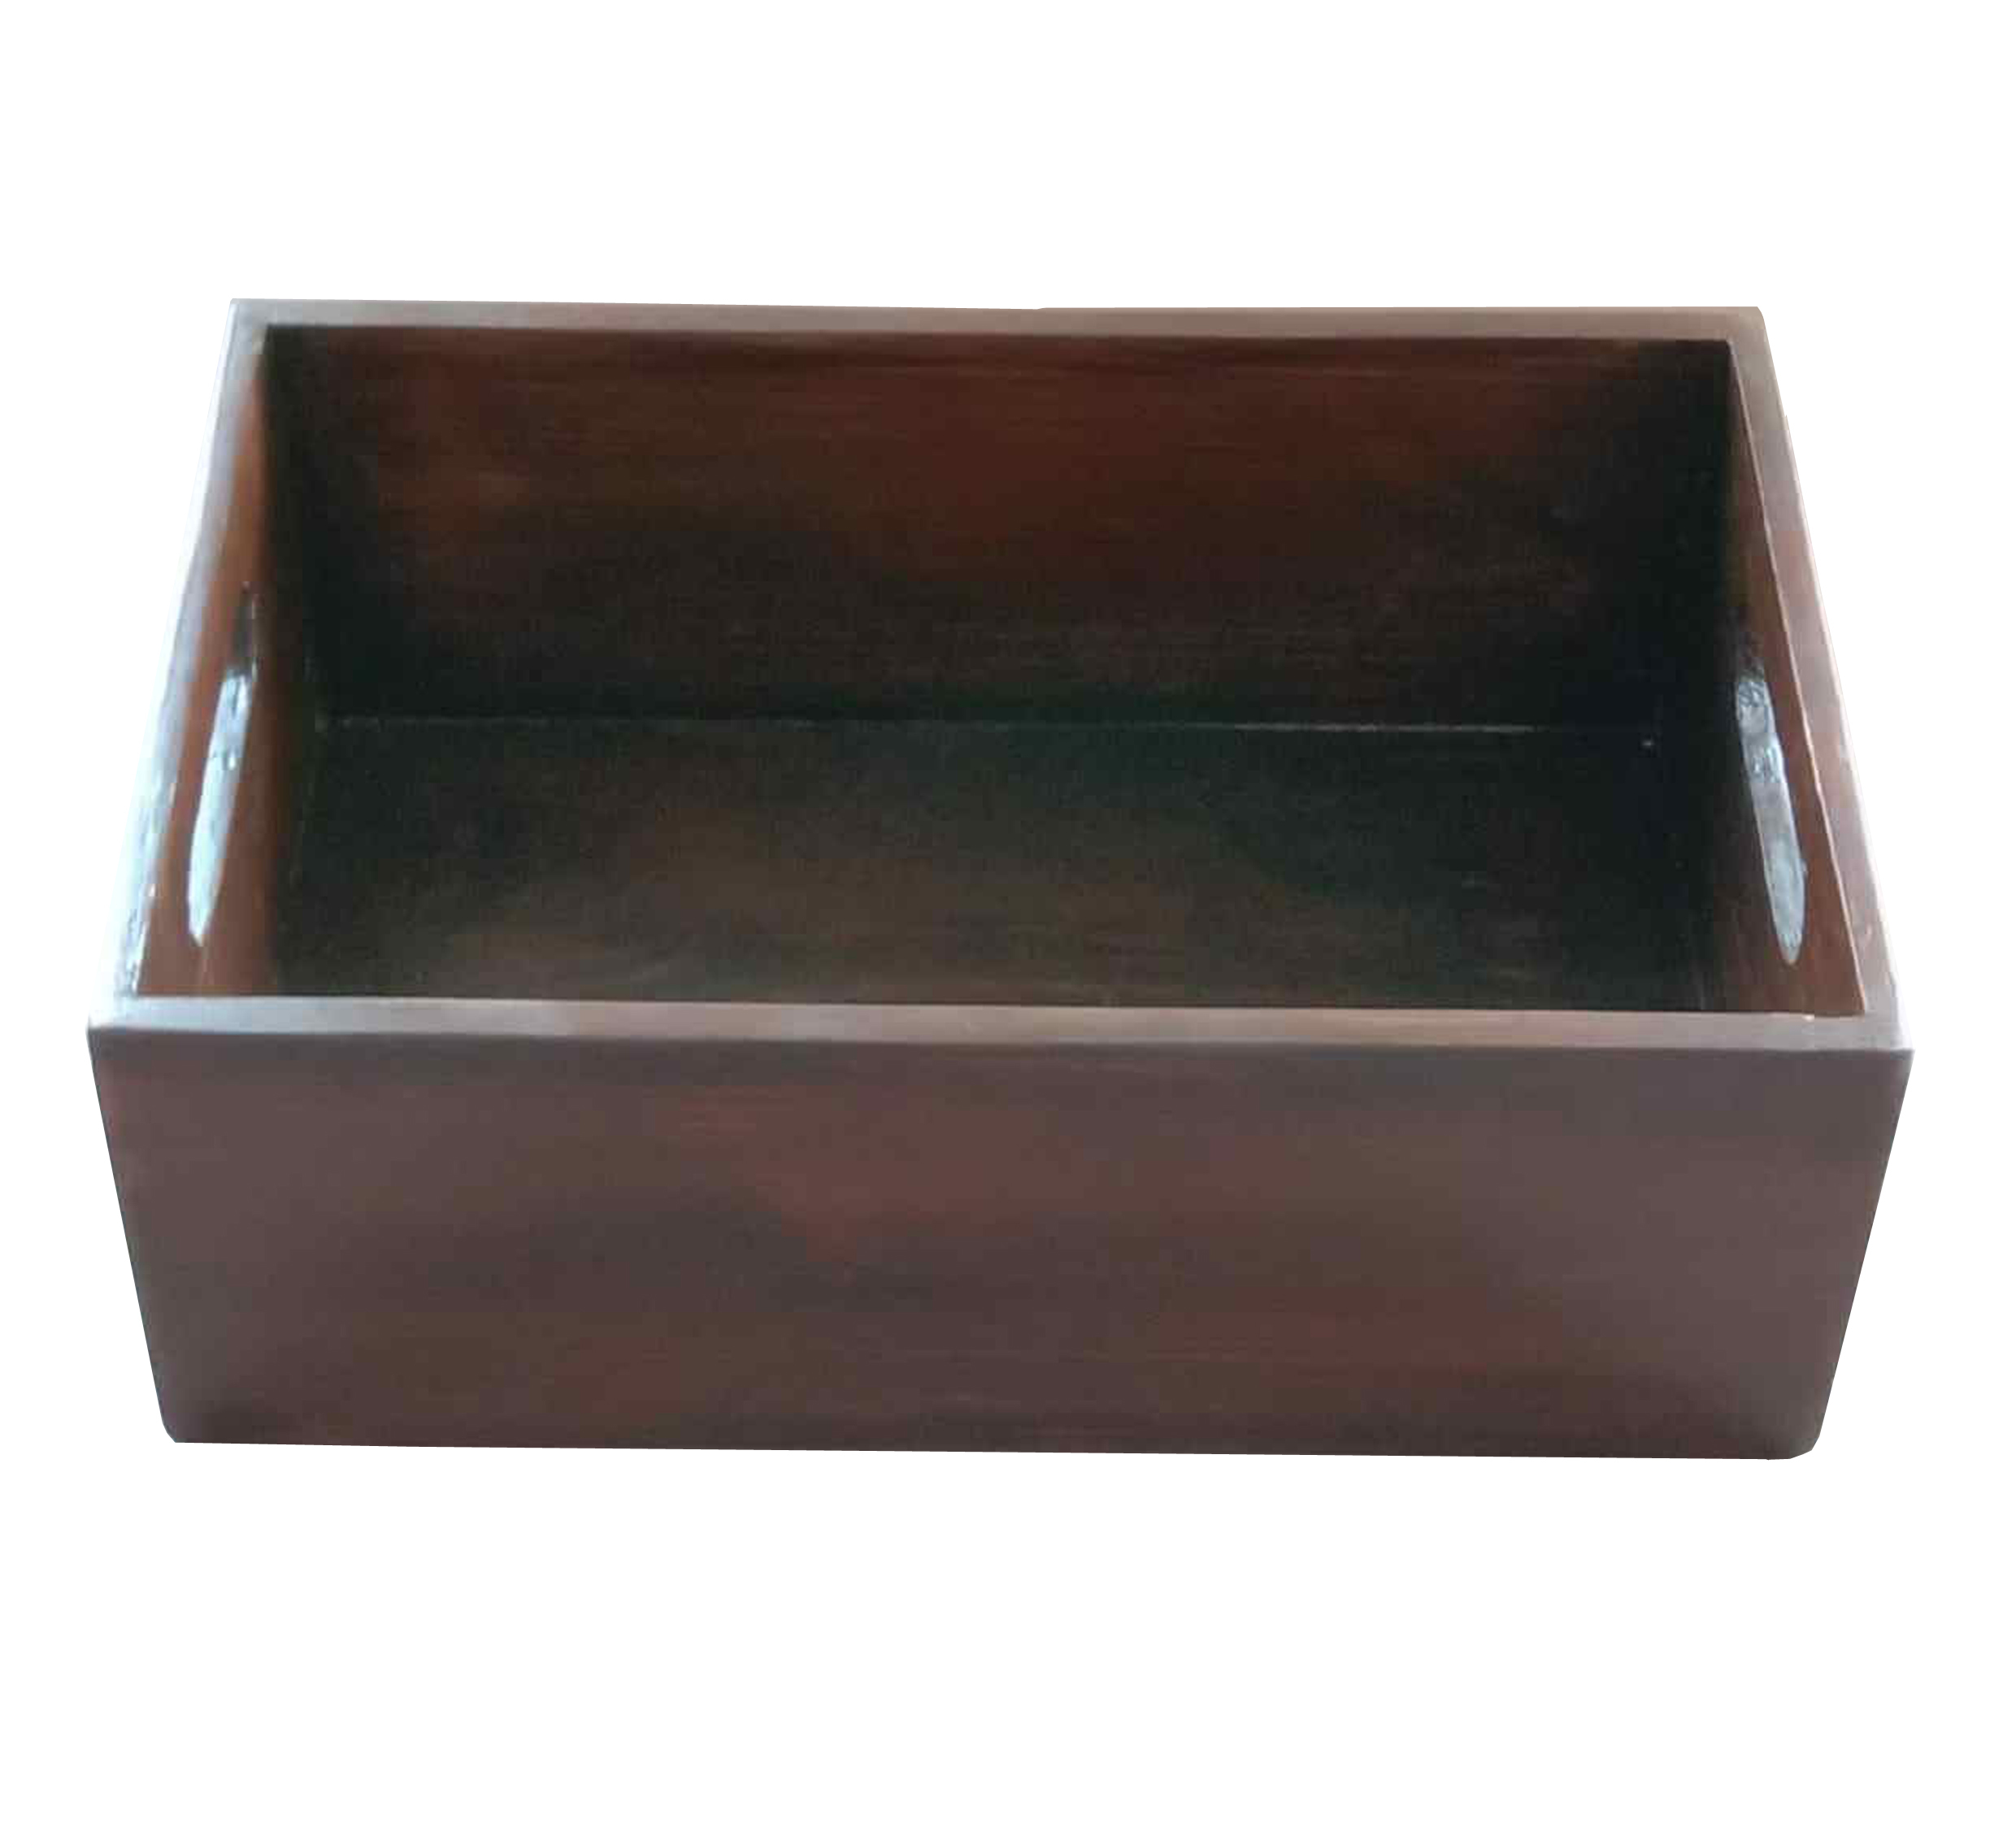 Wooden Storage and Gift Boxes cum Organisers.